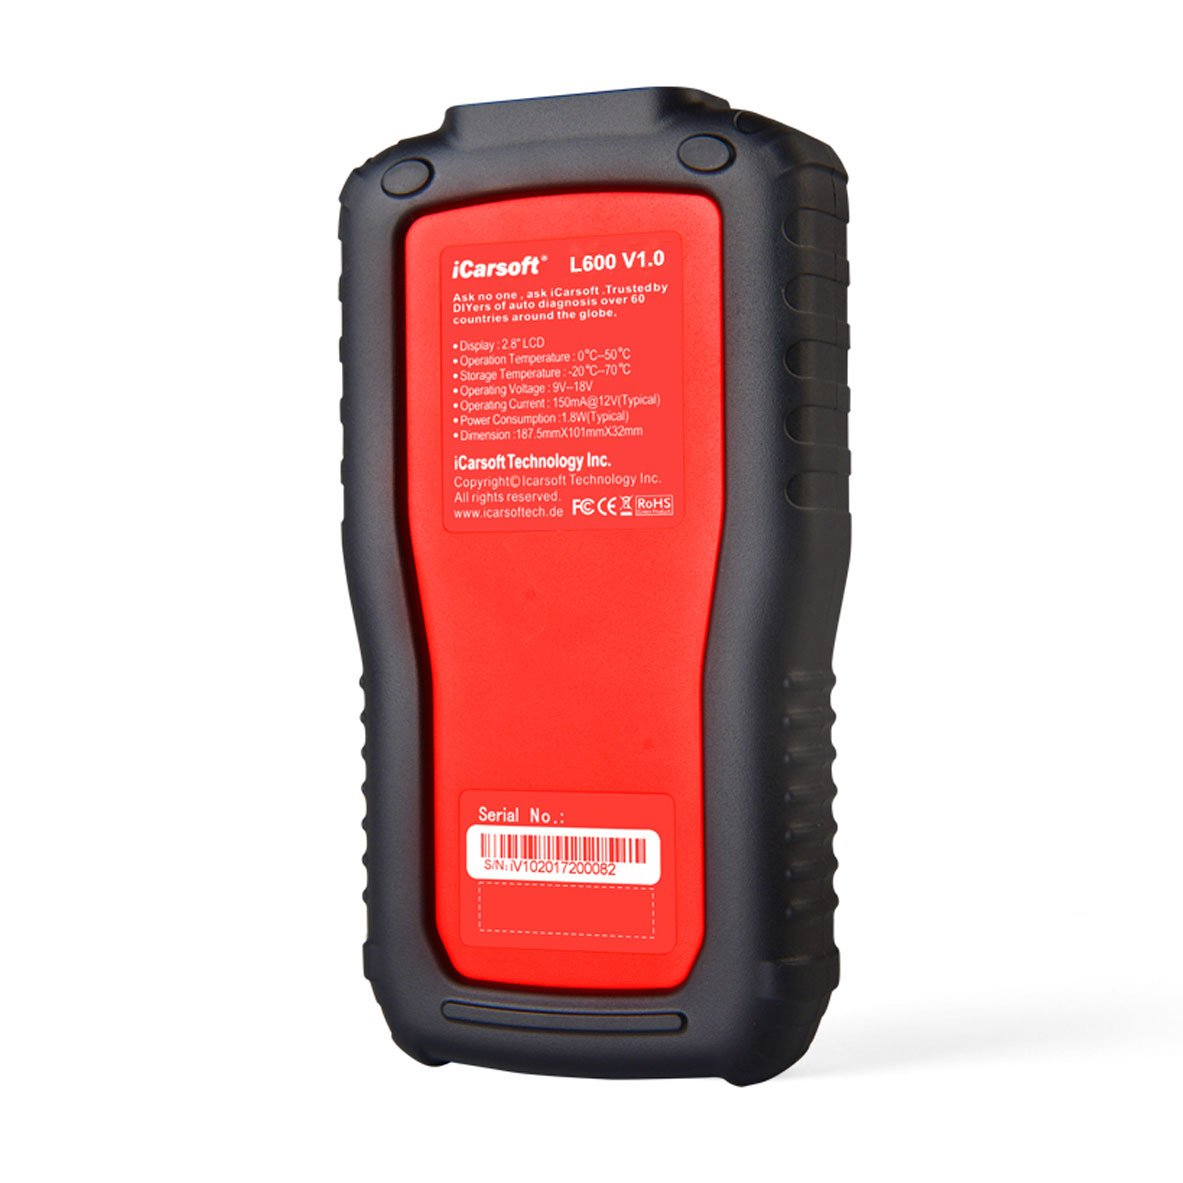 iCarsoft Auto Diagnostic Scanner L600 V1.0 for Landrover and Jaguar with ABS Scan,Oil Reset etc by iCarsoft (Image #4)